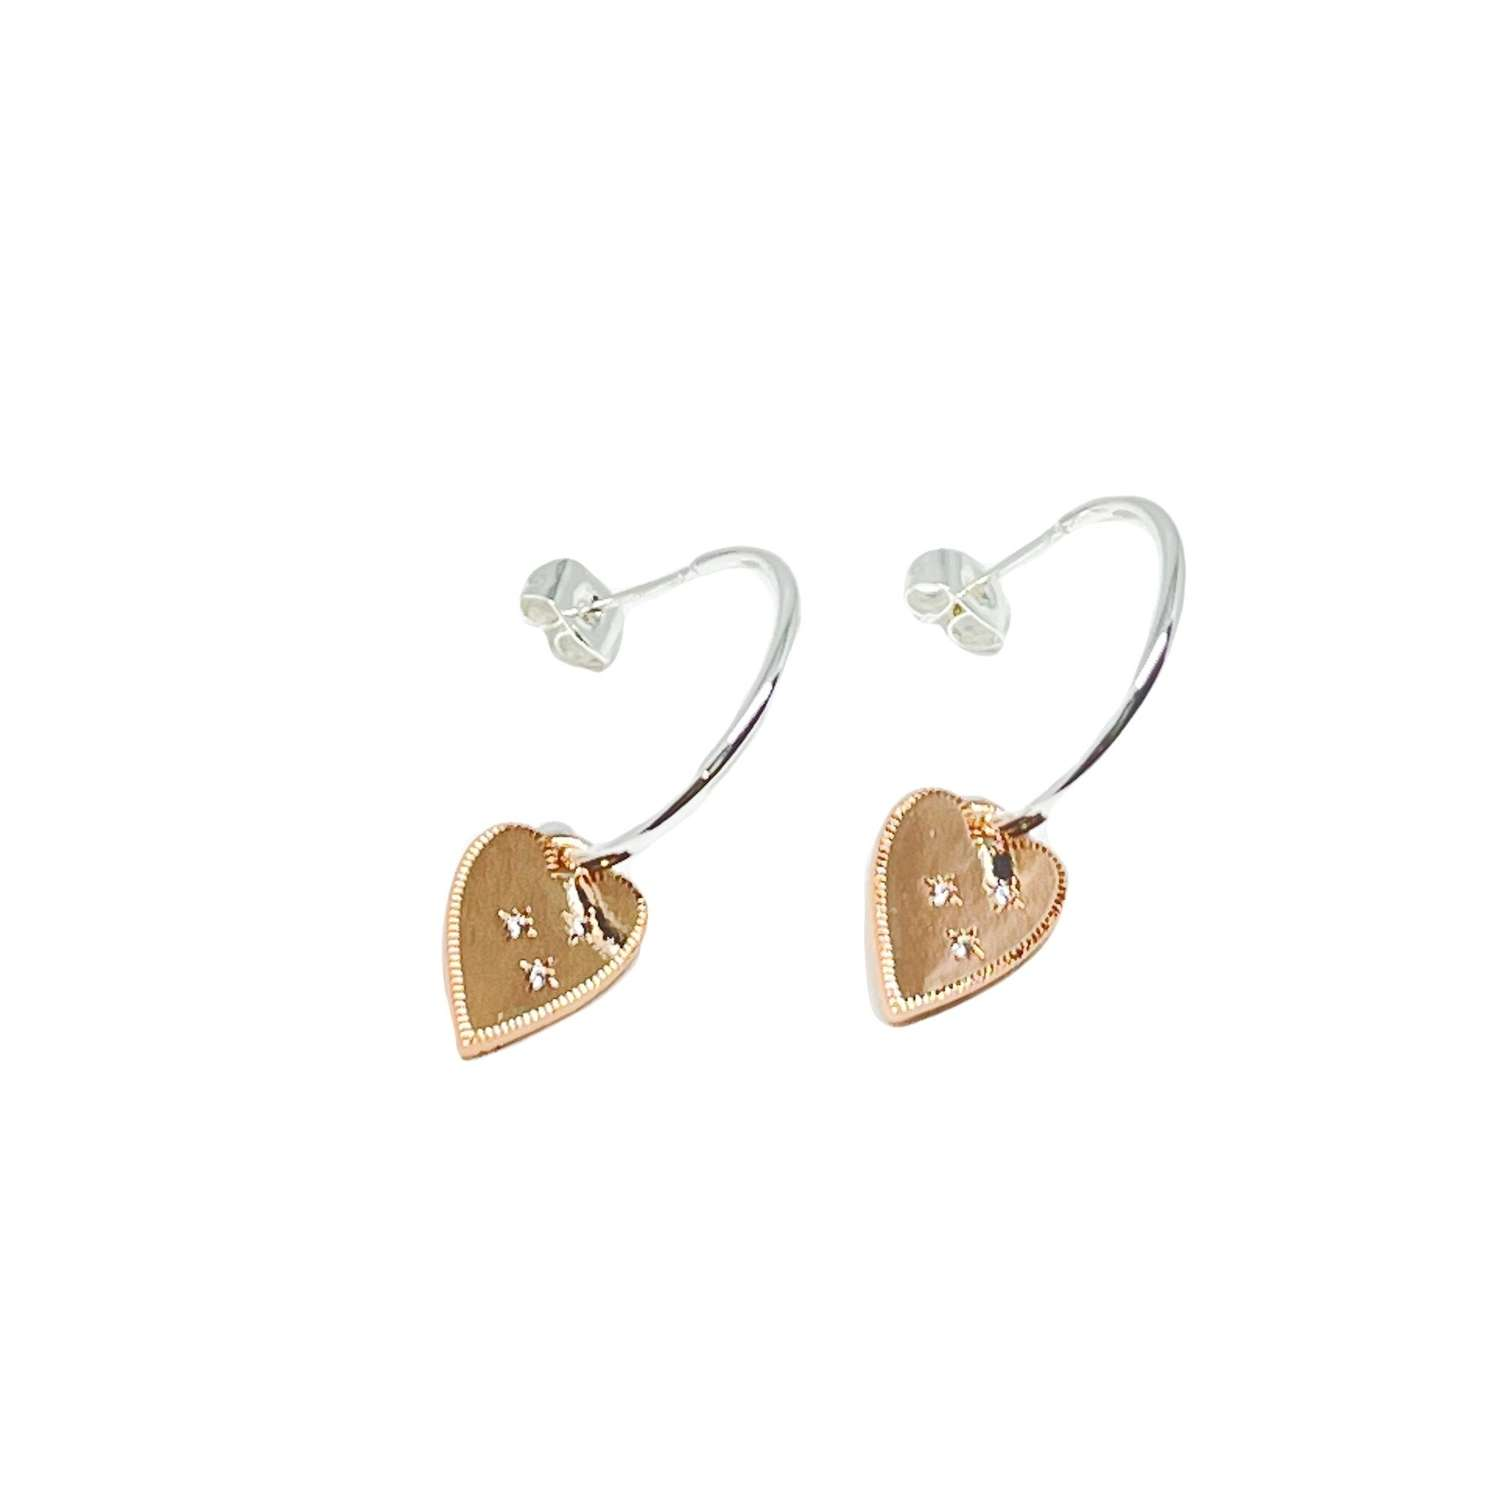 Lucy Sterling Silver Earring - Rose Gold